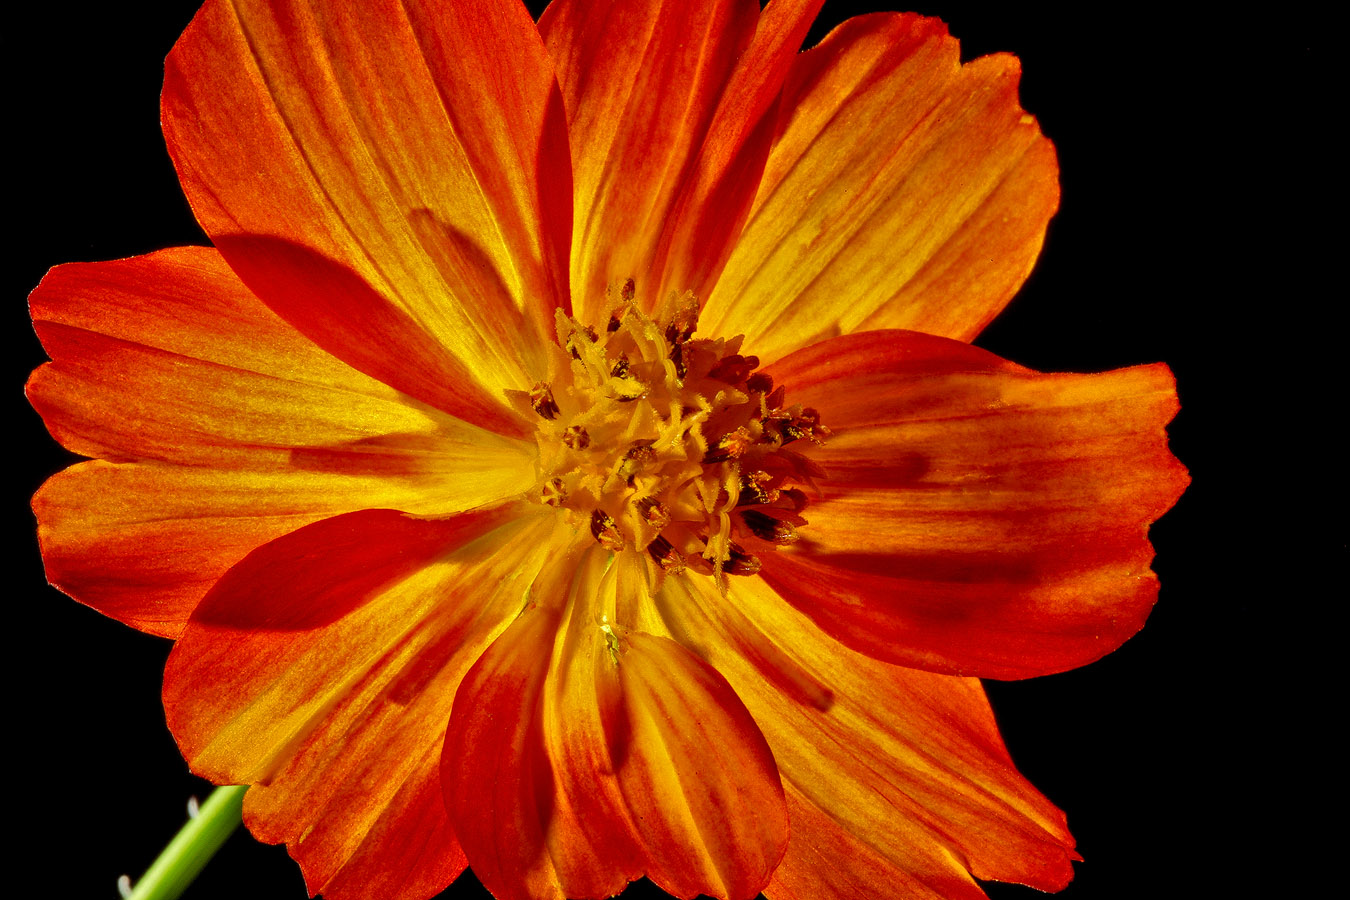 cosmos backlit img aw author sava gregory and ver verena